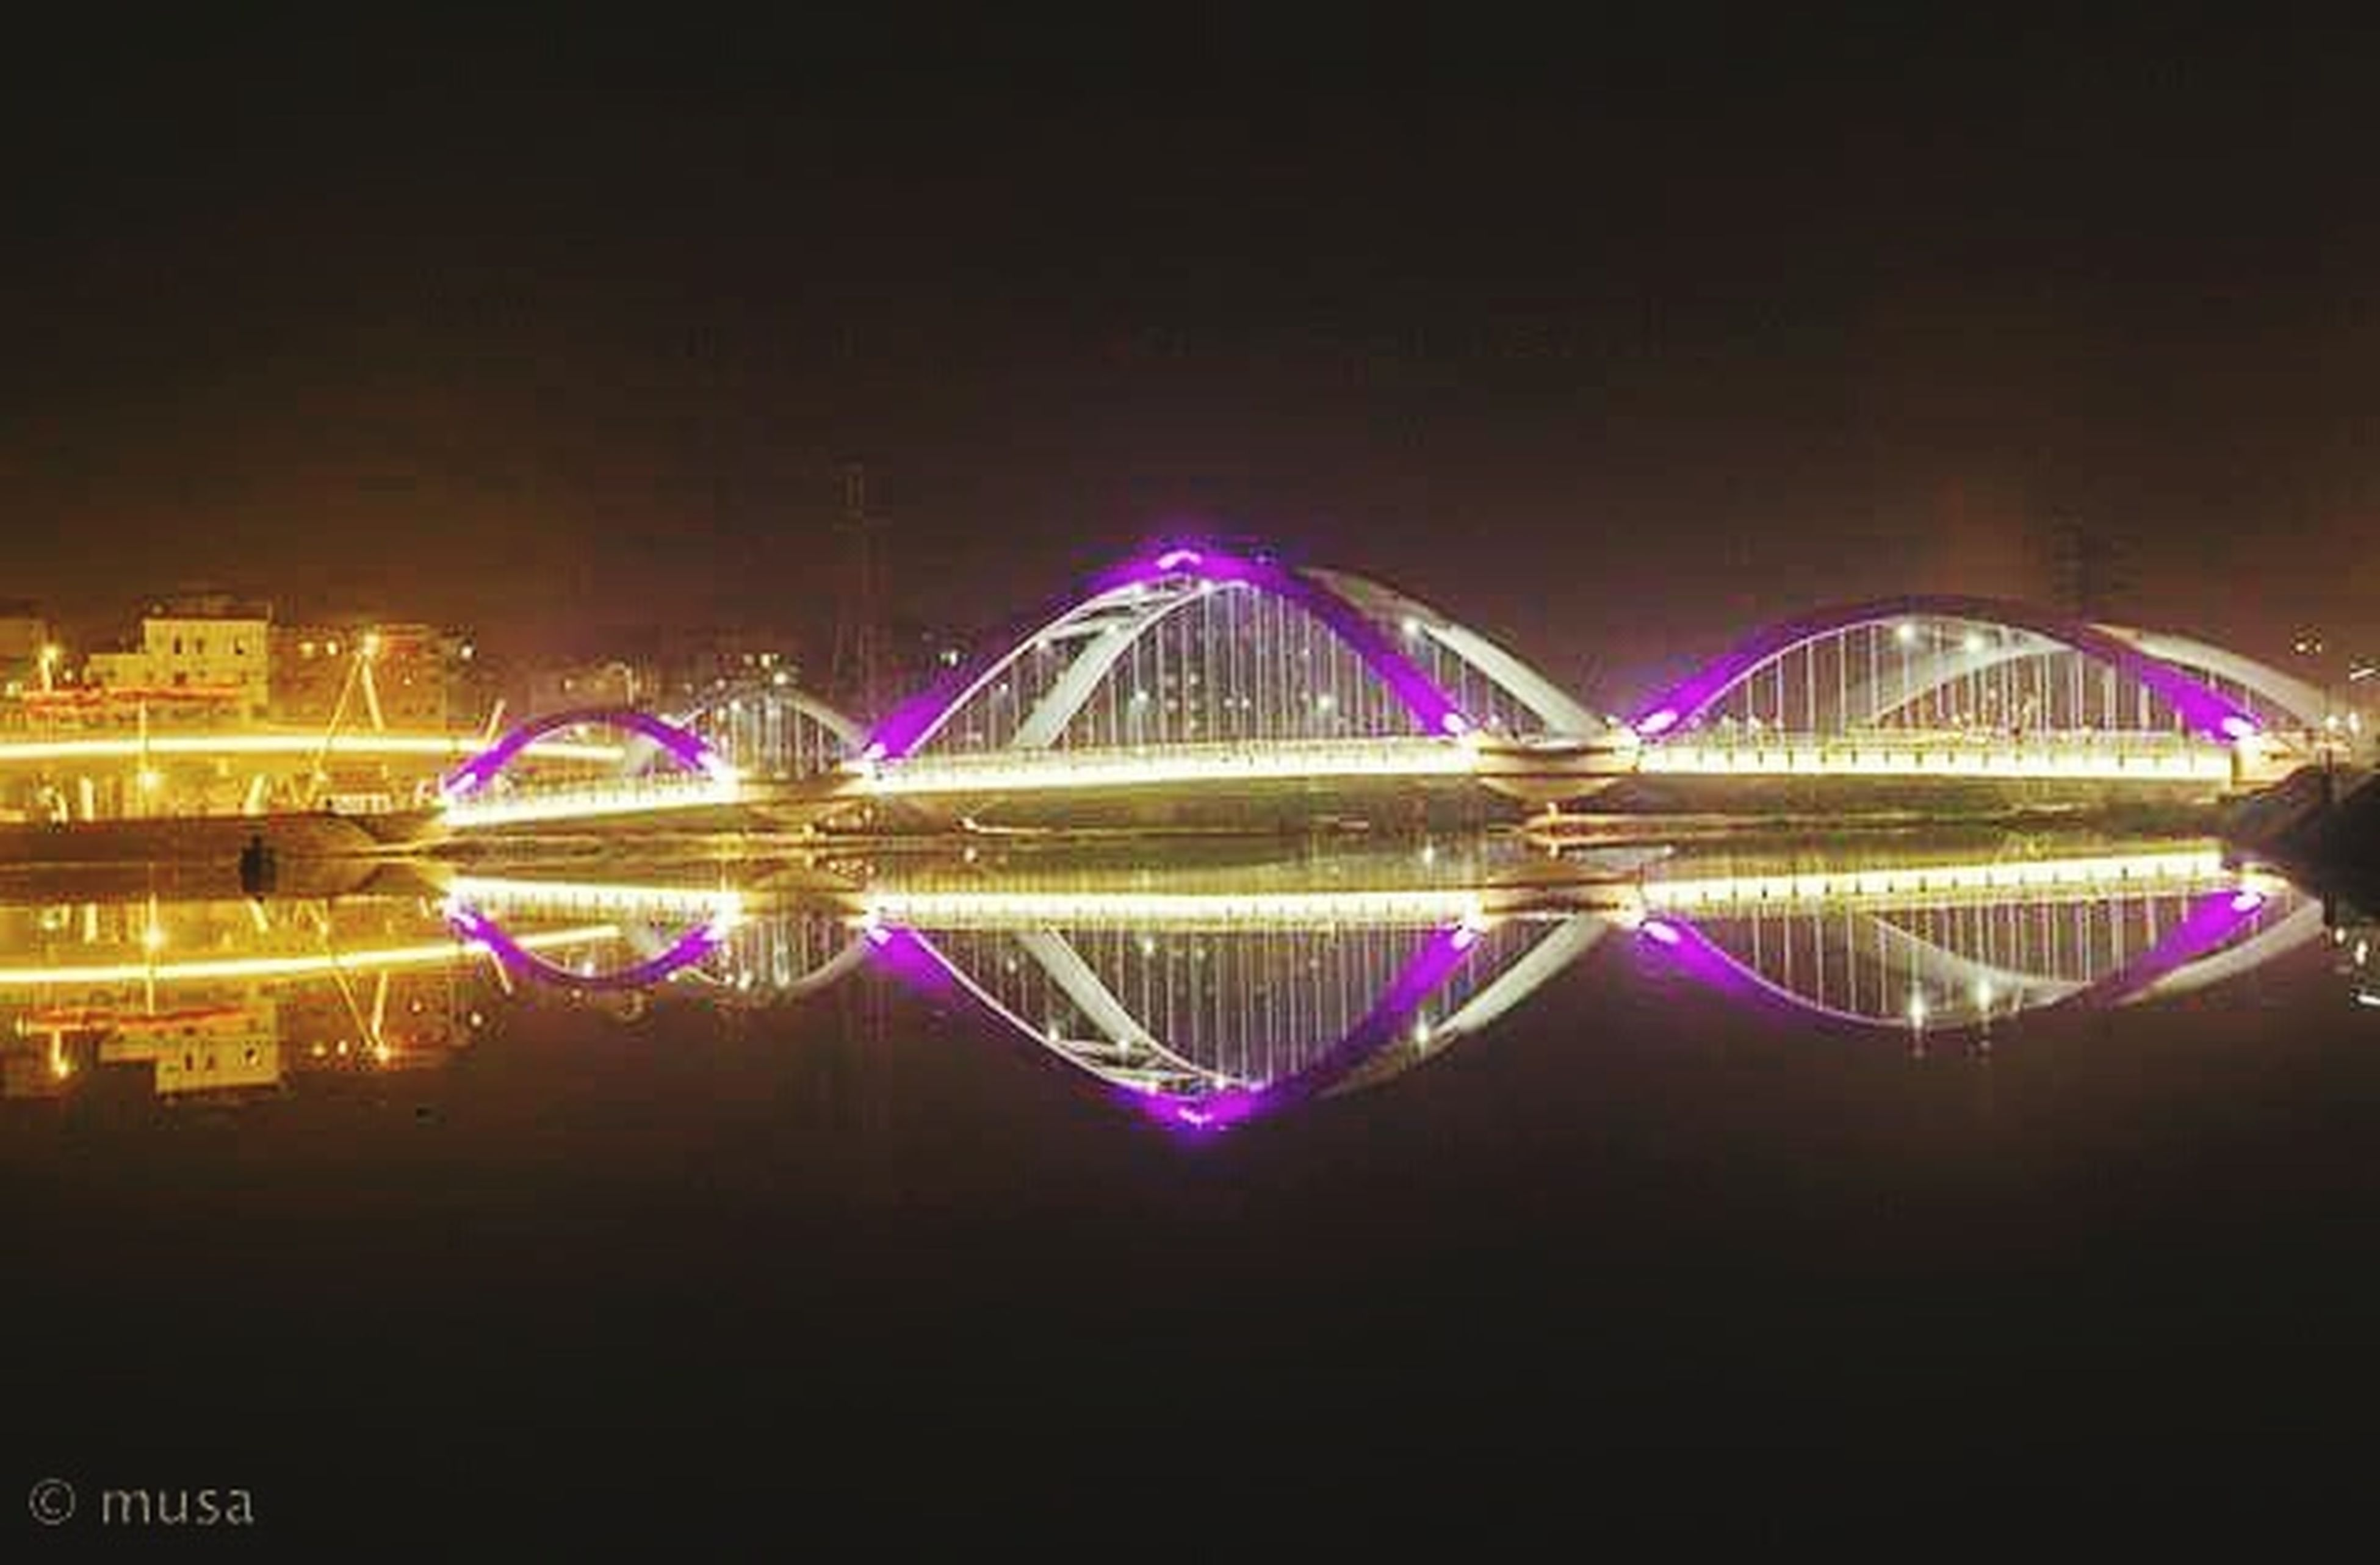 night, reflection, illuminated, city, igniting, ferris wheel, connection, sky, architecture, water, bridge - man made structure, no people, cityscape, outdoors